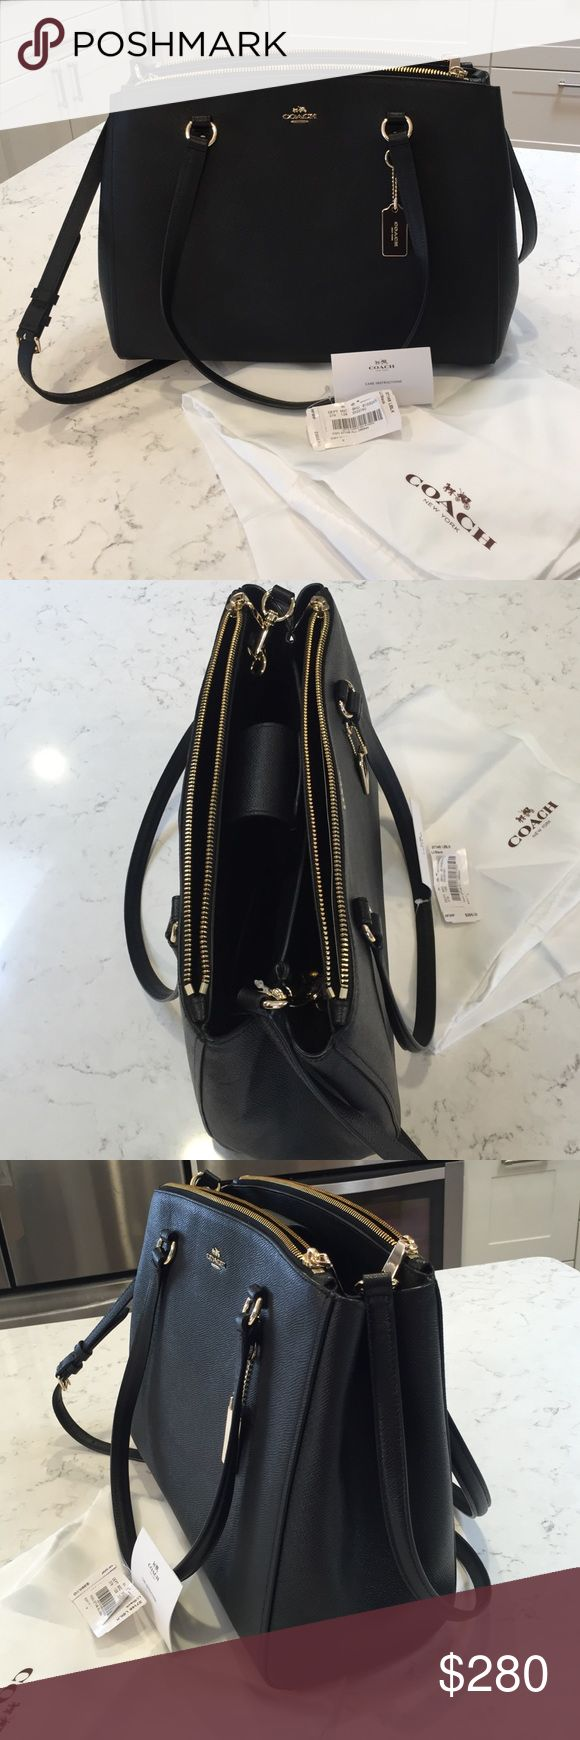 NWT Black COACH purse BRAND NEW black COACH 'STANTON' carryall in crossgrain leather. comes with cross body strap. has two large pockets, and divider, along with three smaller pockets. Coach Bags Totes